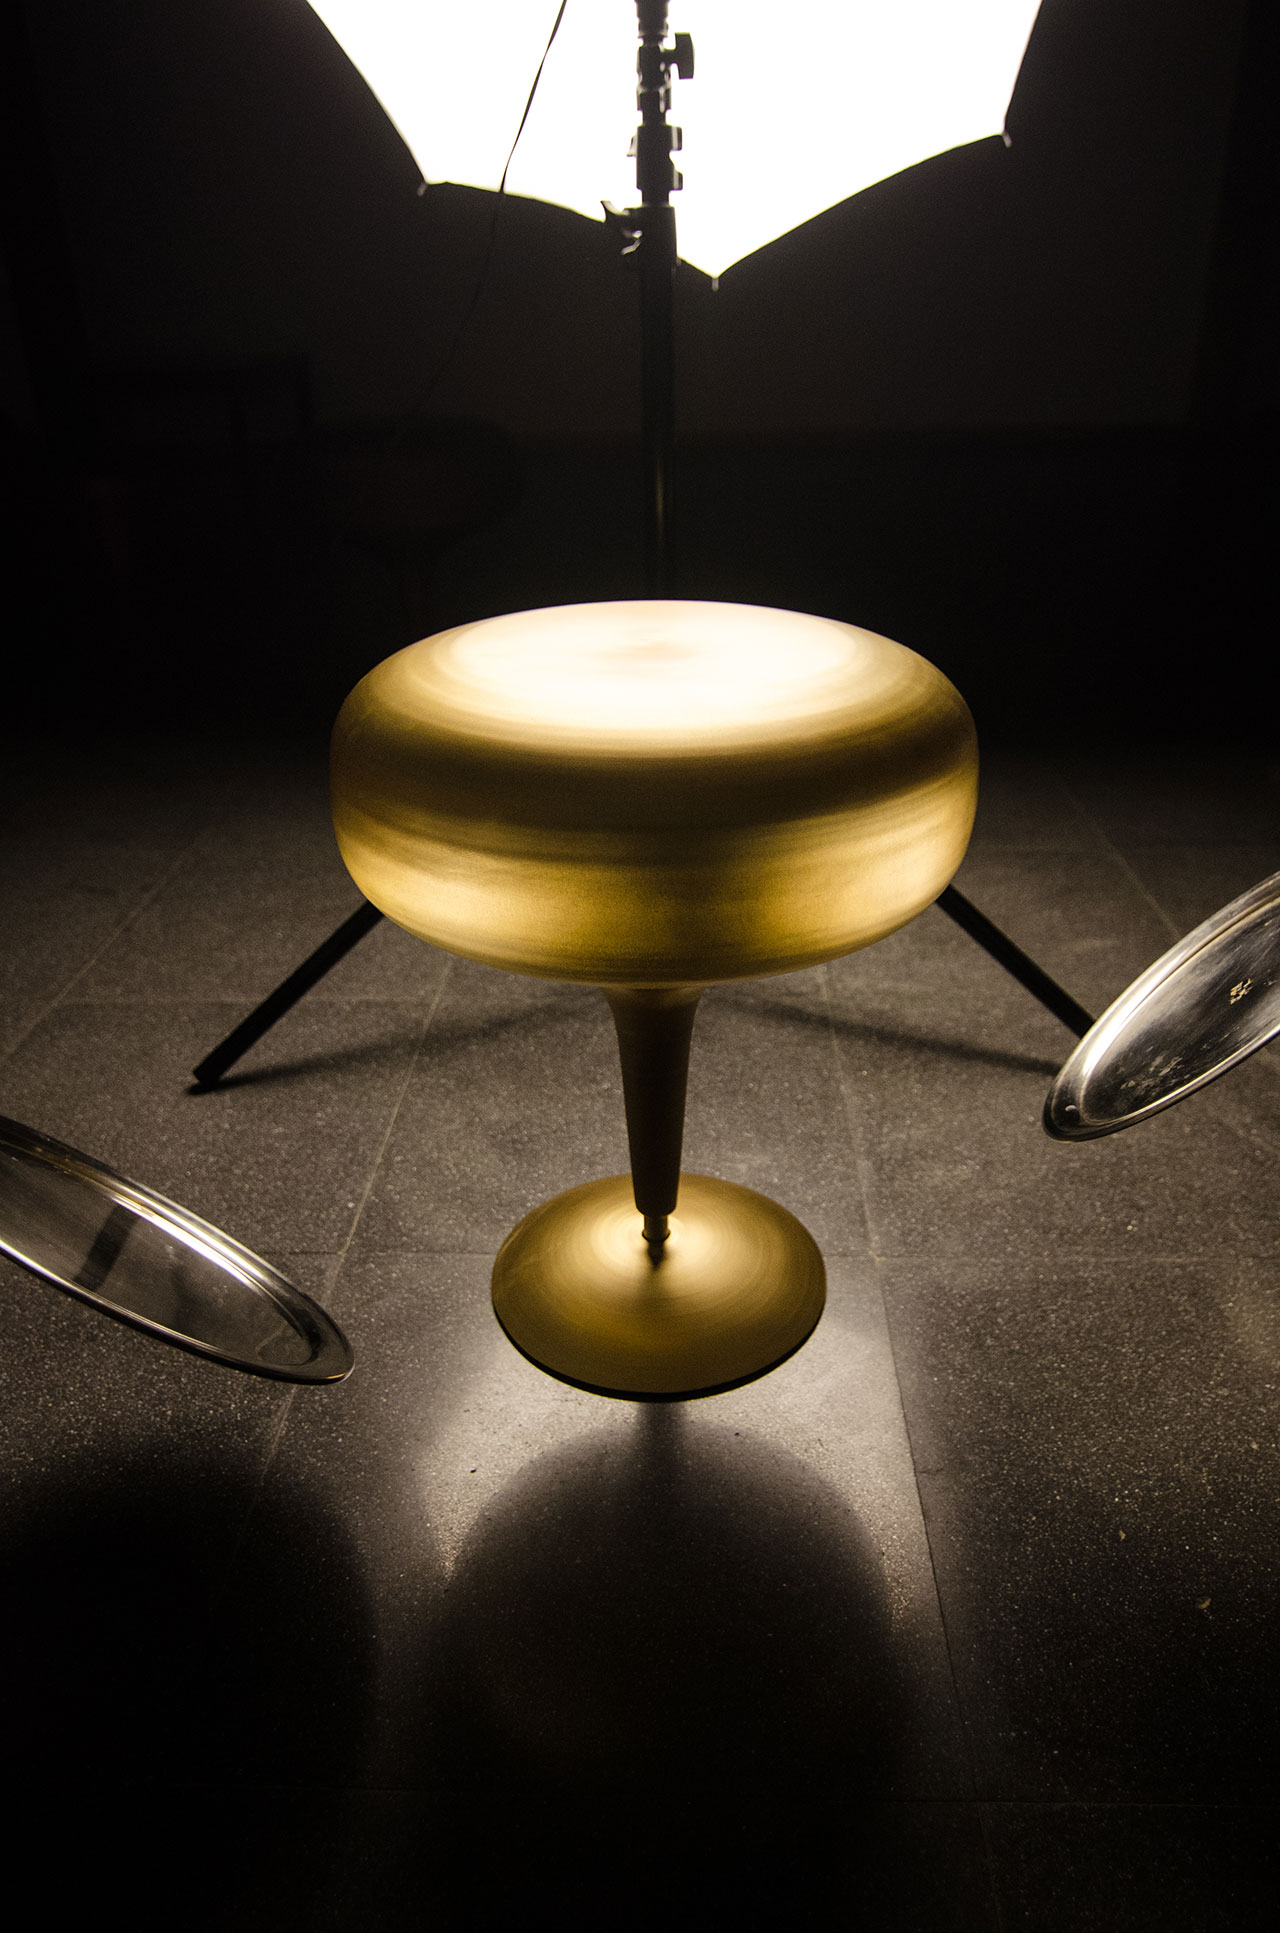 Lattoo stool by Coalesce Design Studio. Photo courtesy Design Days Dubai.